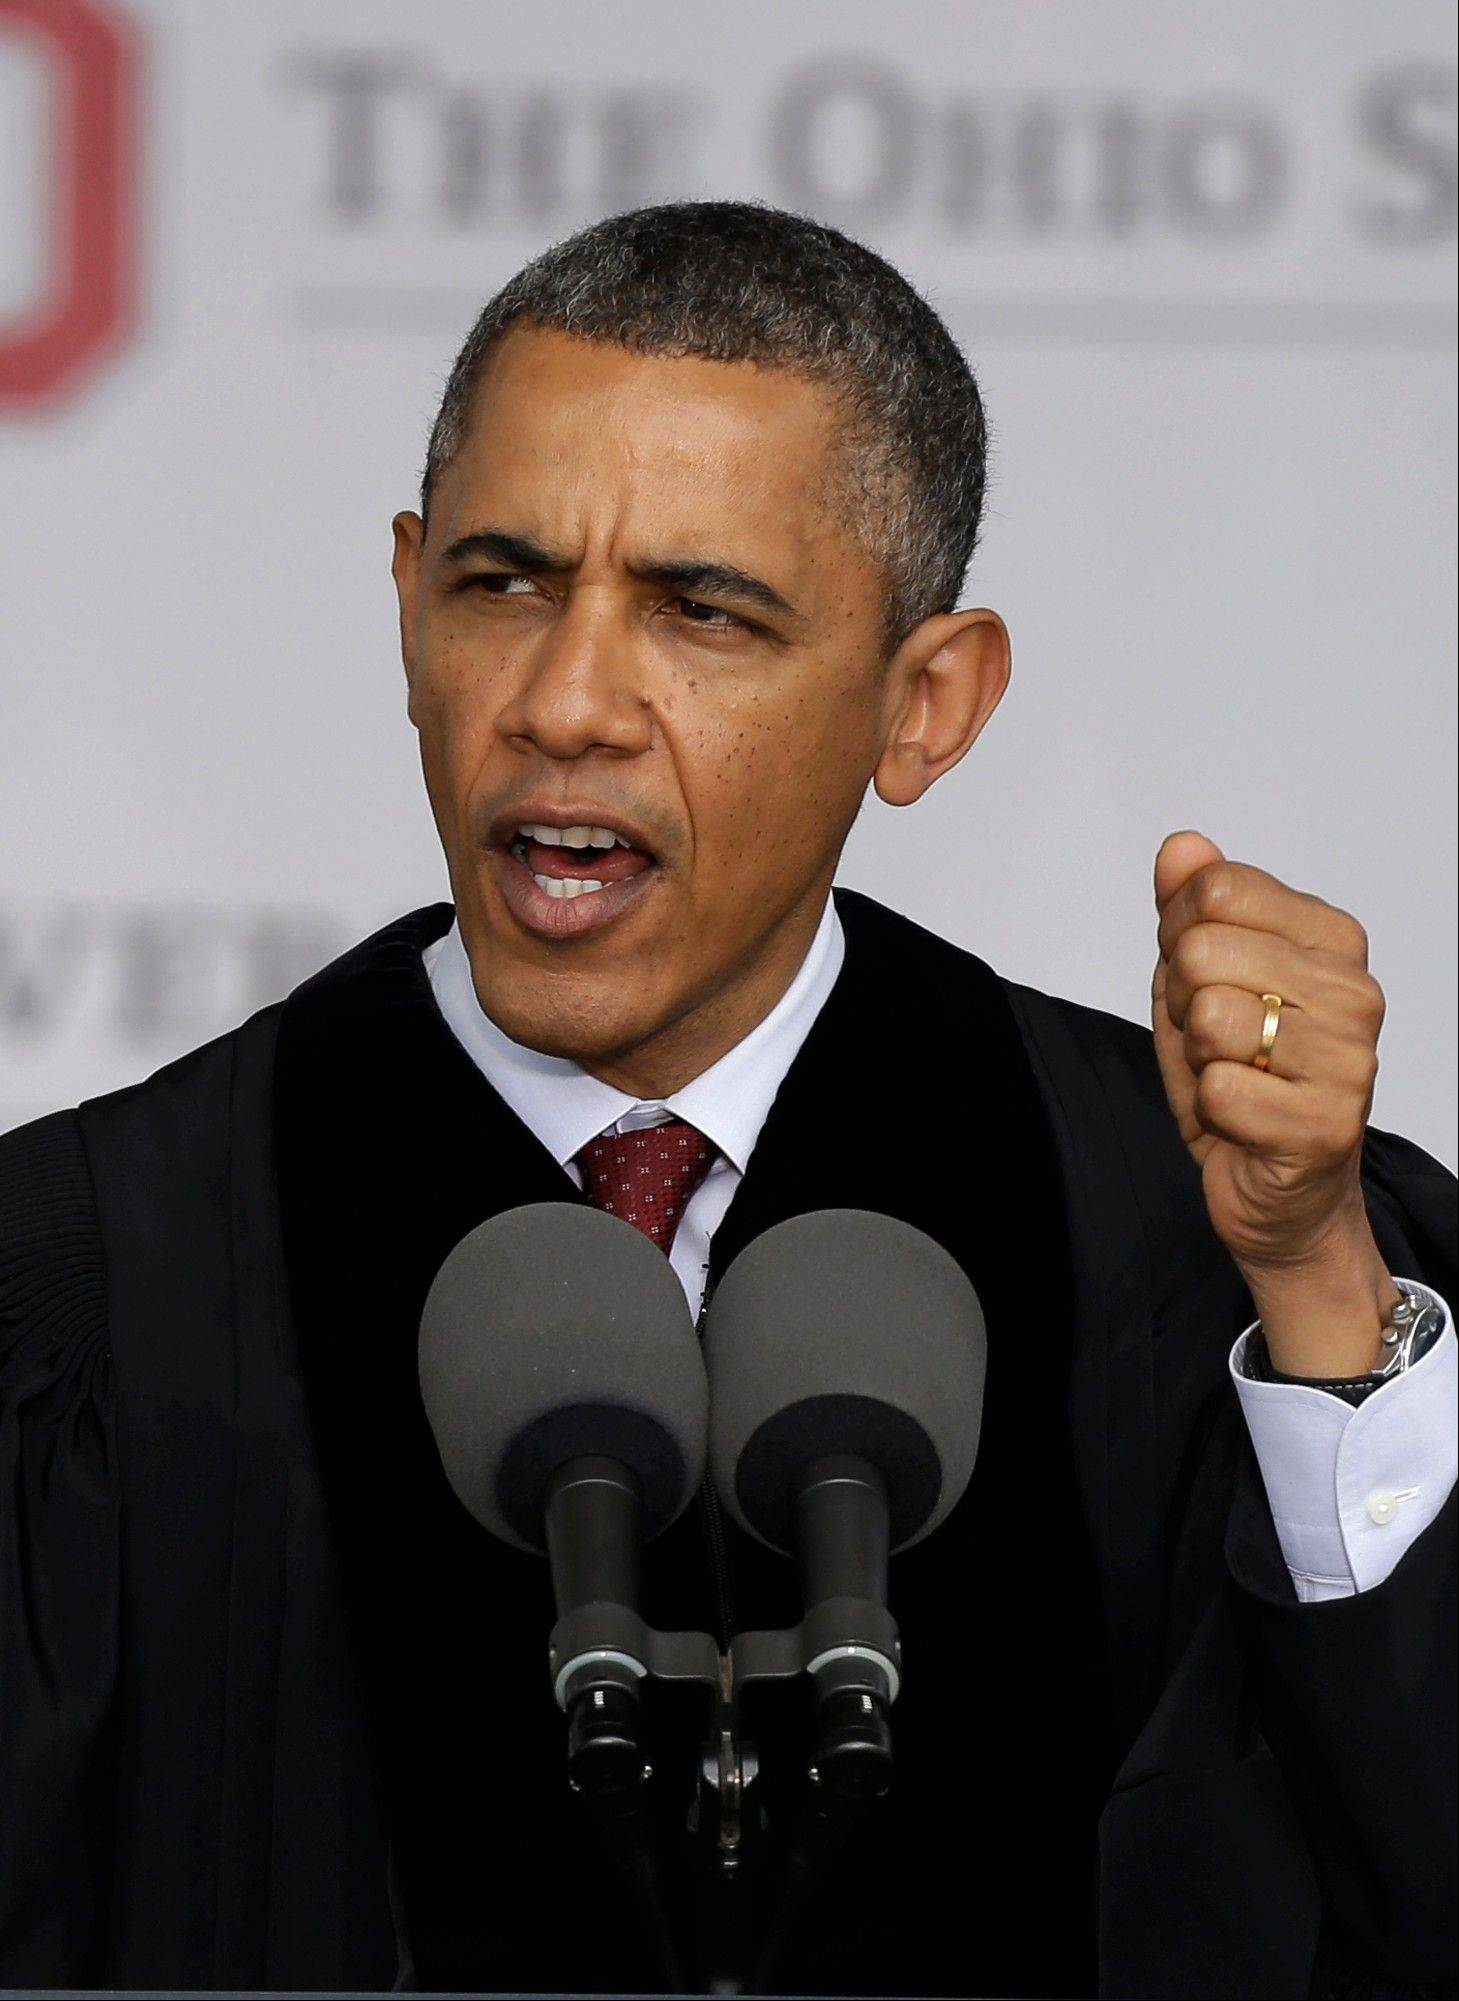 President Barack Obama speaks at Ohio State University's spring commencement ceremony Sunday in Columbus, Ohio. Obama urged graduating students to be active citizens, to fight for causes they believe in, and to be better than generations before them.